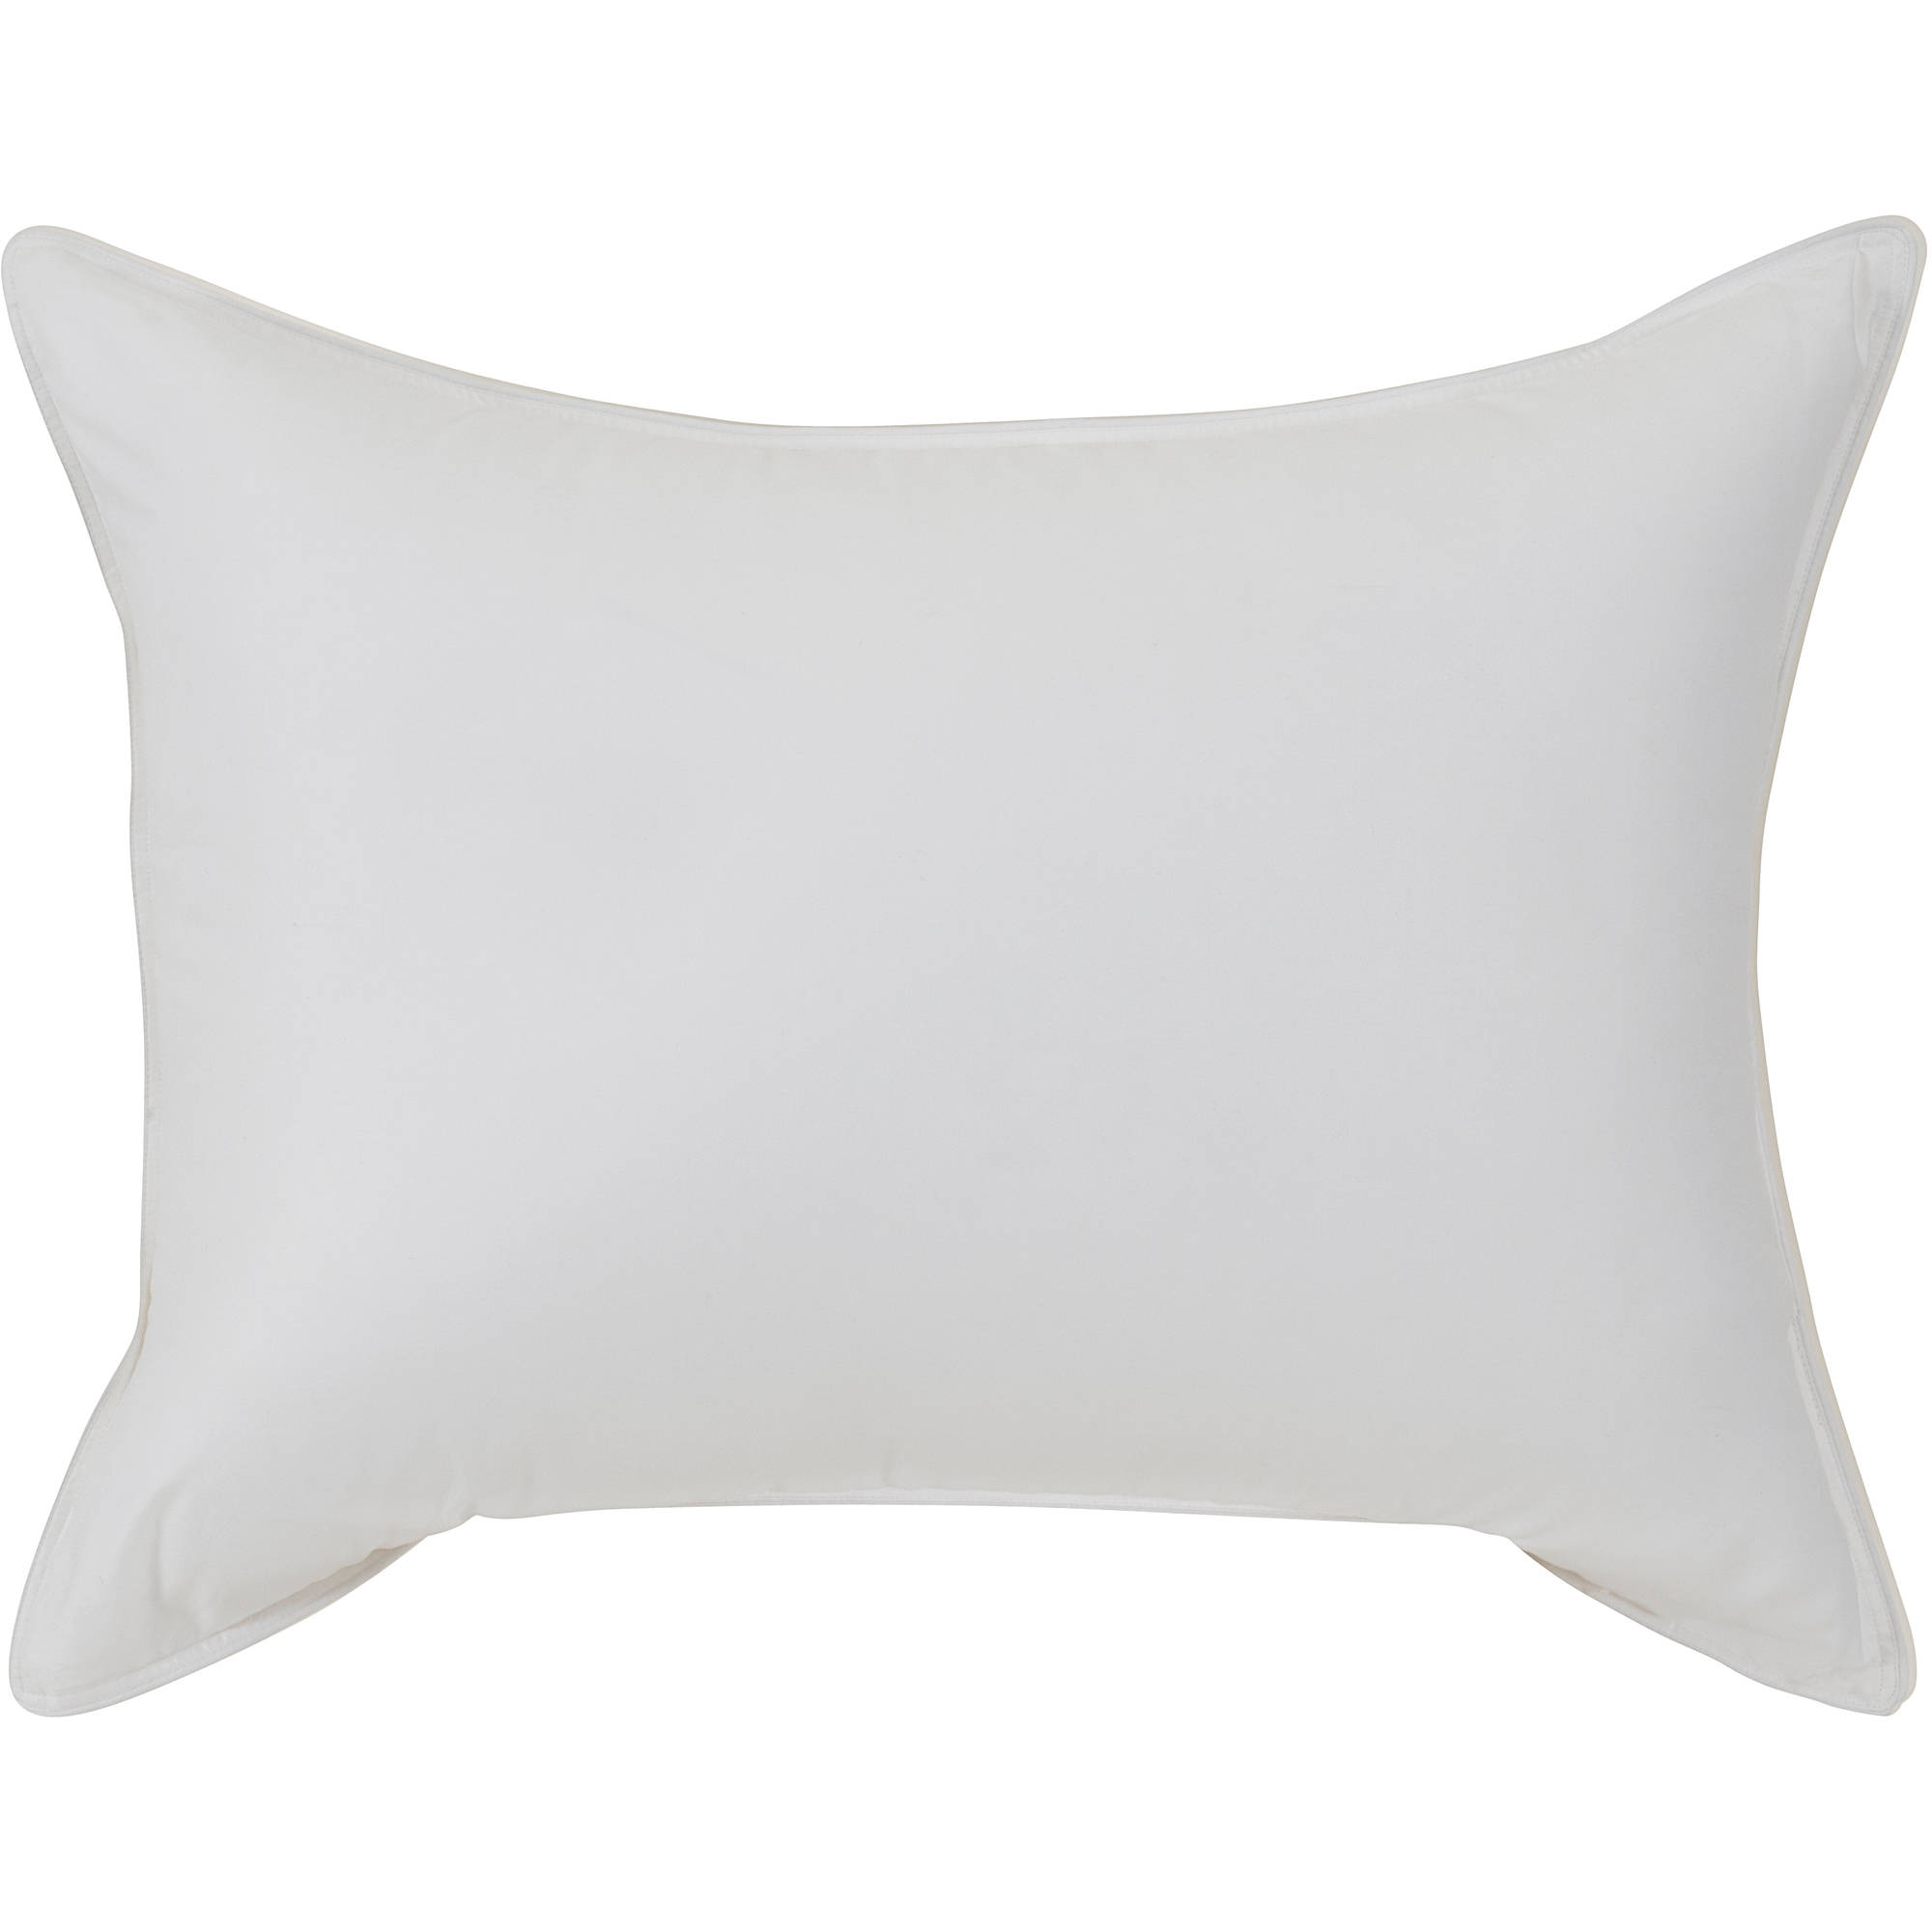 "HoMedics 300 Thread Count 100 Percent Cotton Pillow 20"" x 26"""